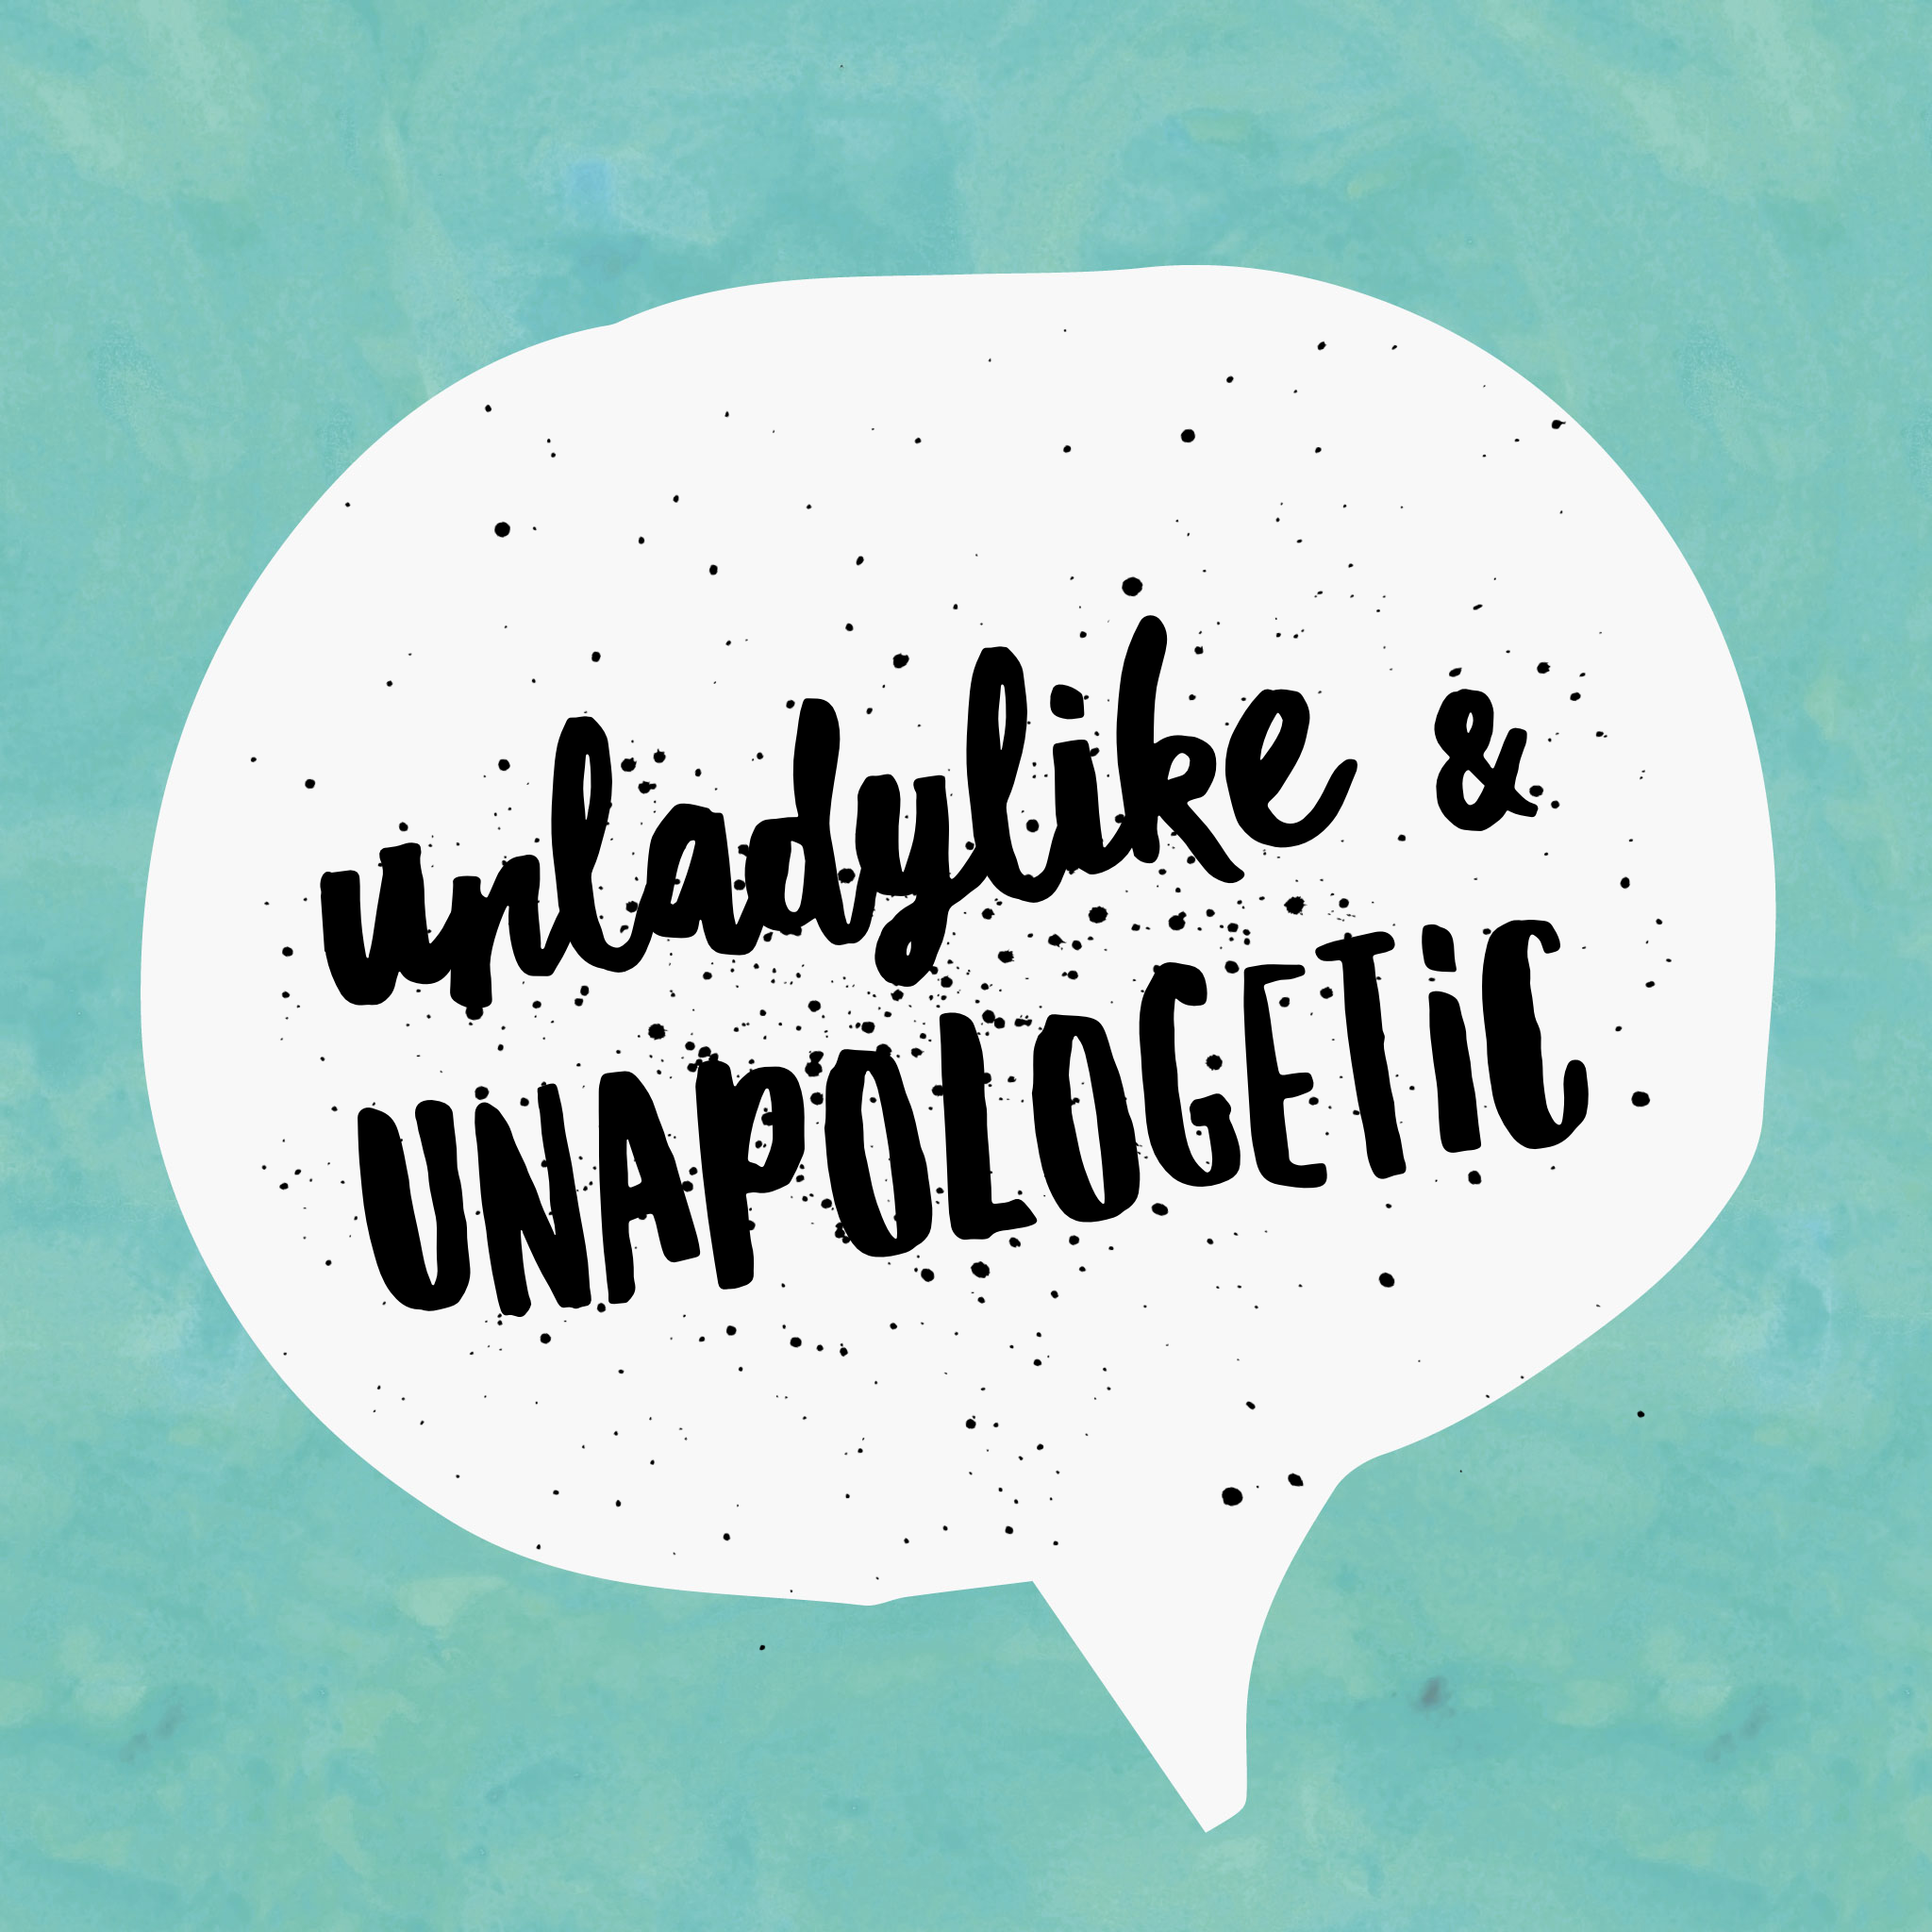 Unladylike and Unapologetic